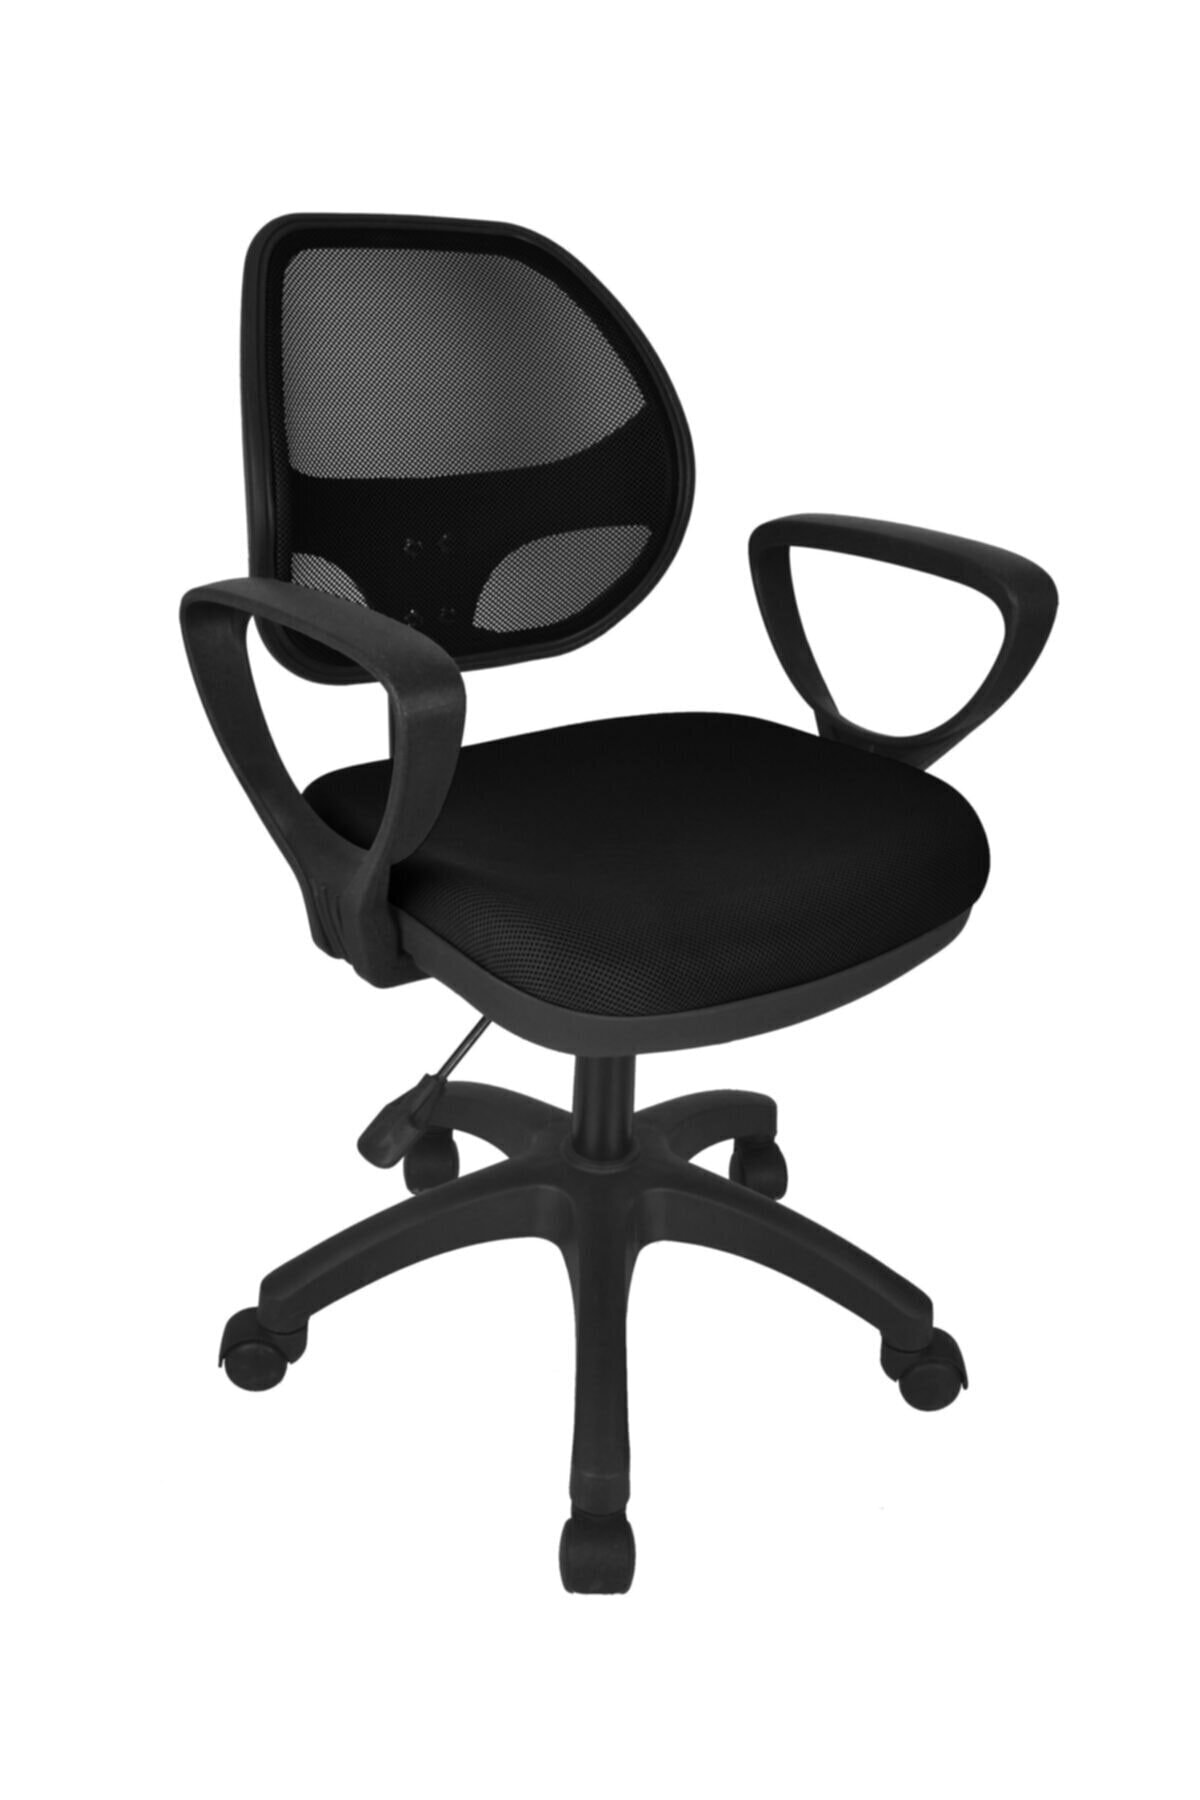 Design Home Ergonomik Fileli Ofis Sandalyesi 1